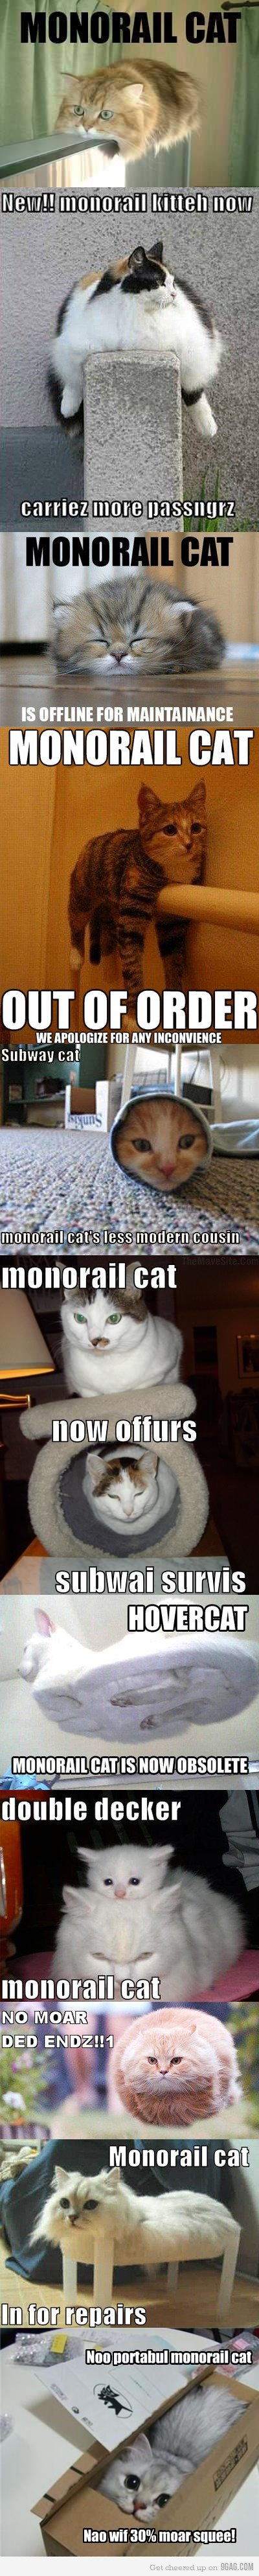 """to much kitteh. monorail cat takes over. carrier's""""'% Ii? Tss: Iur, z BAT BUT IIN' sf is cat rti, t"""